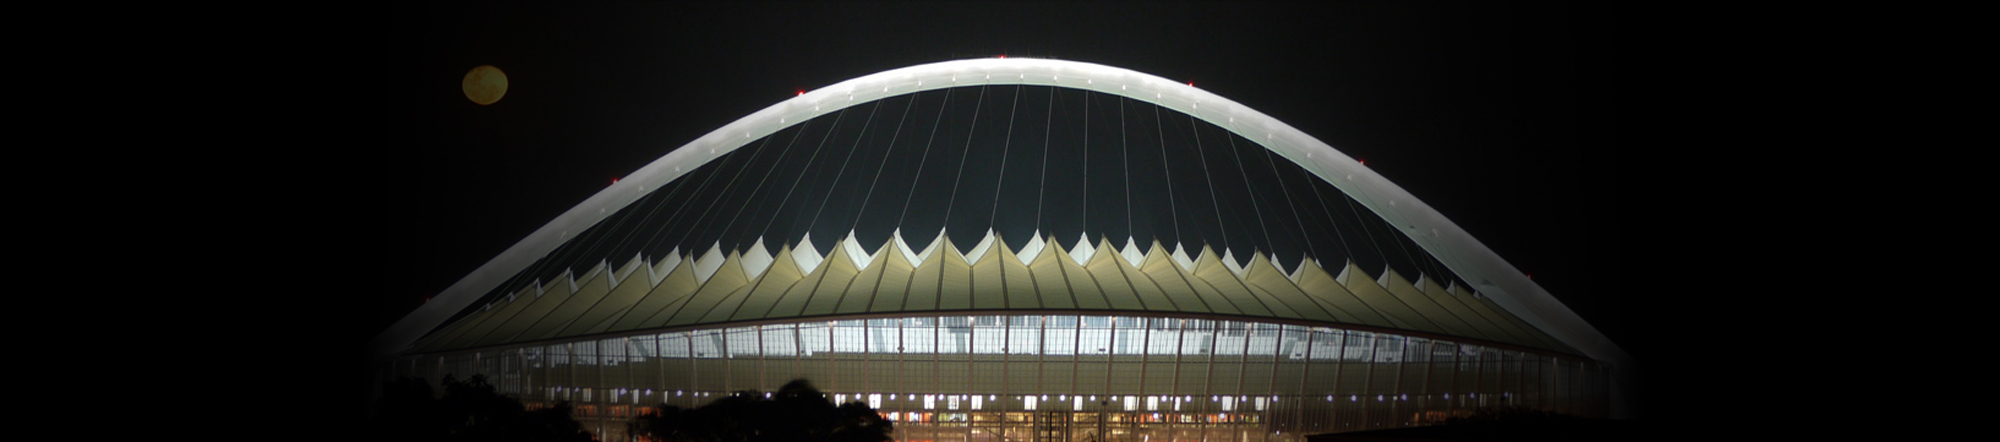 Architectural fabric atop the Moses Mabhida stadium in Durban, South Africa